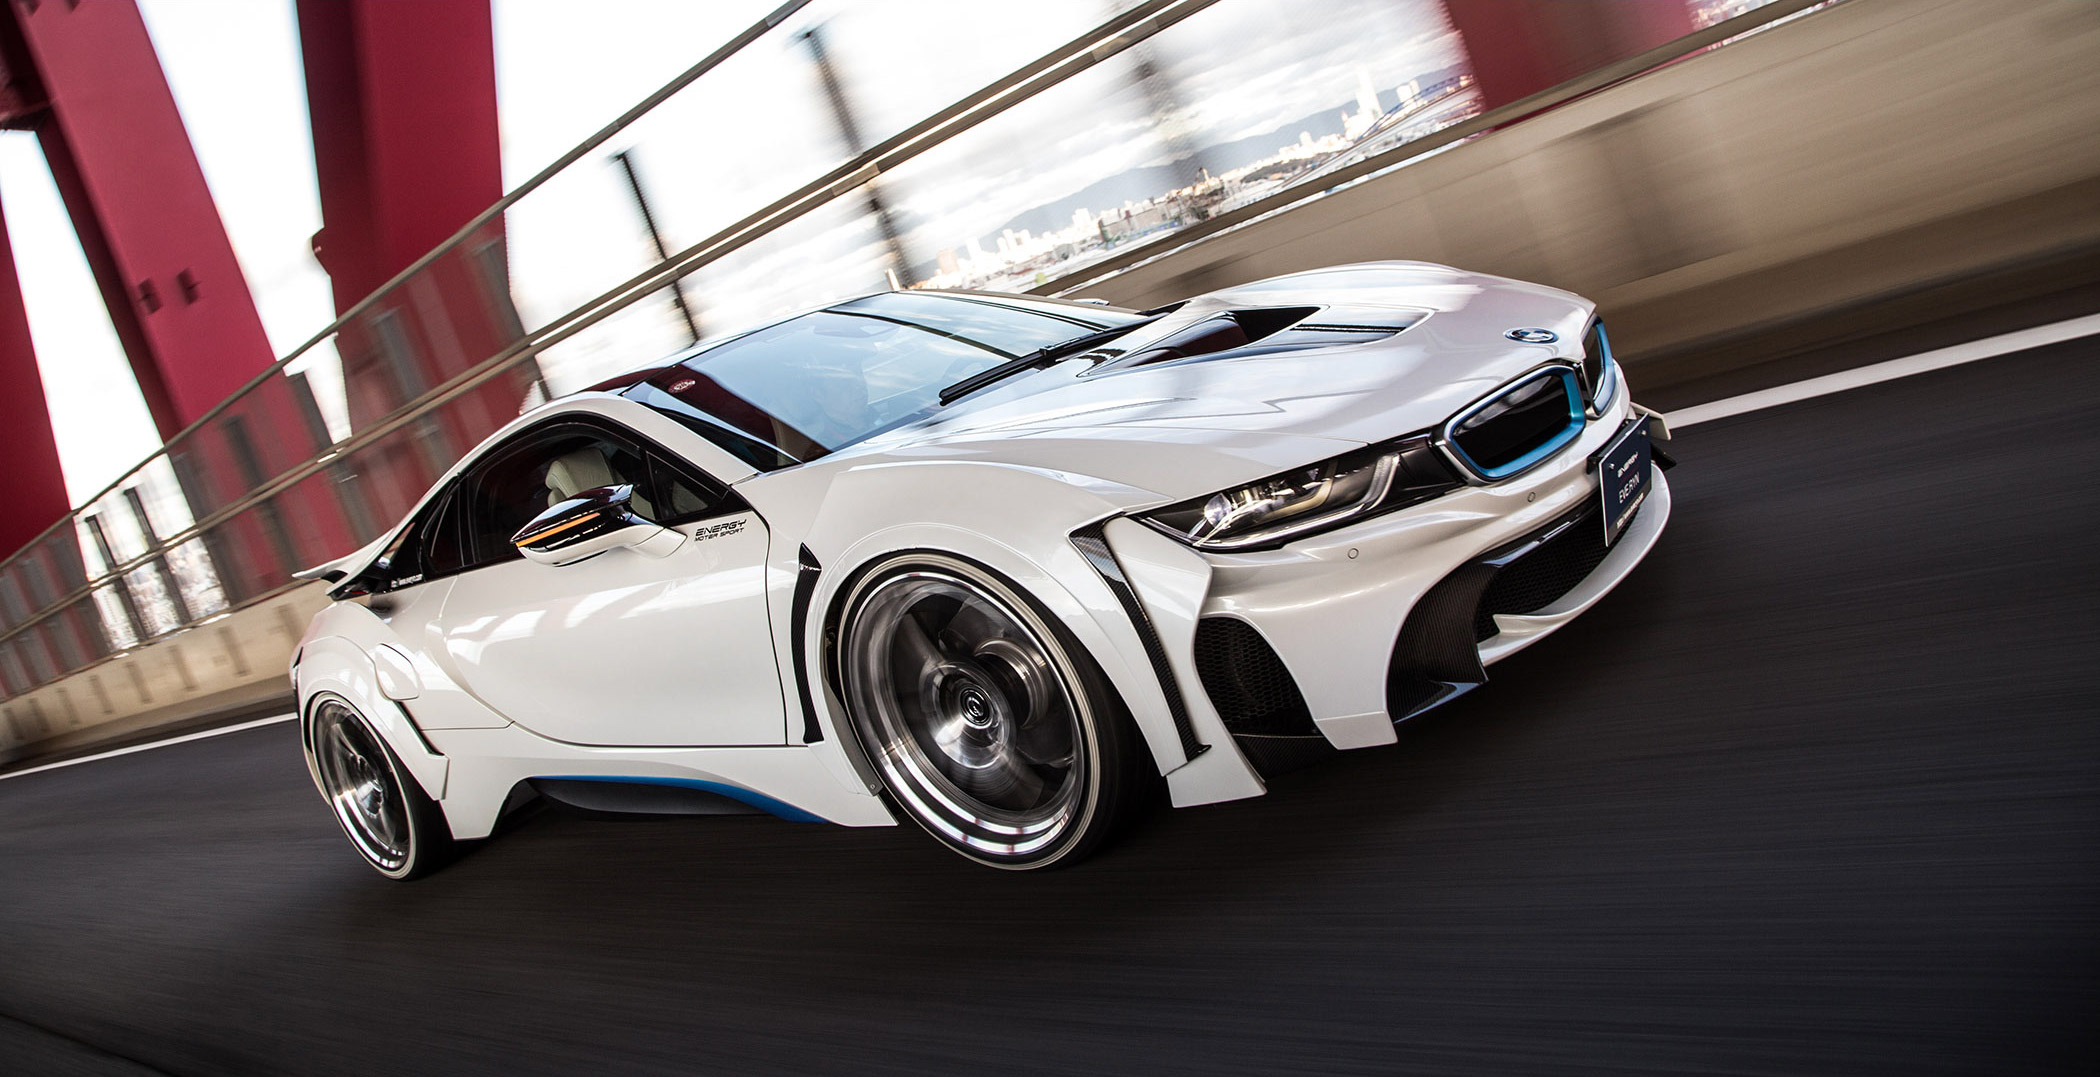 bmw i8 with Ems Bmw I8 19 on Bmw I8 Wrapped In Giovanna Edition Matte Metallic Grigio Wrap 3 together with Photos as well M06 moreover Liberty Walk Bmw M4 moreover 2017 Bmw I8 Review A 21st Century Supercar 06506913.